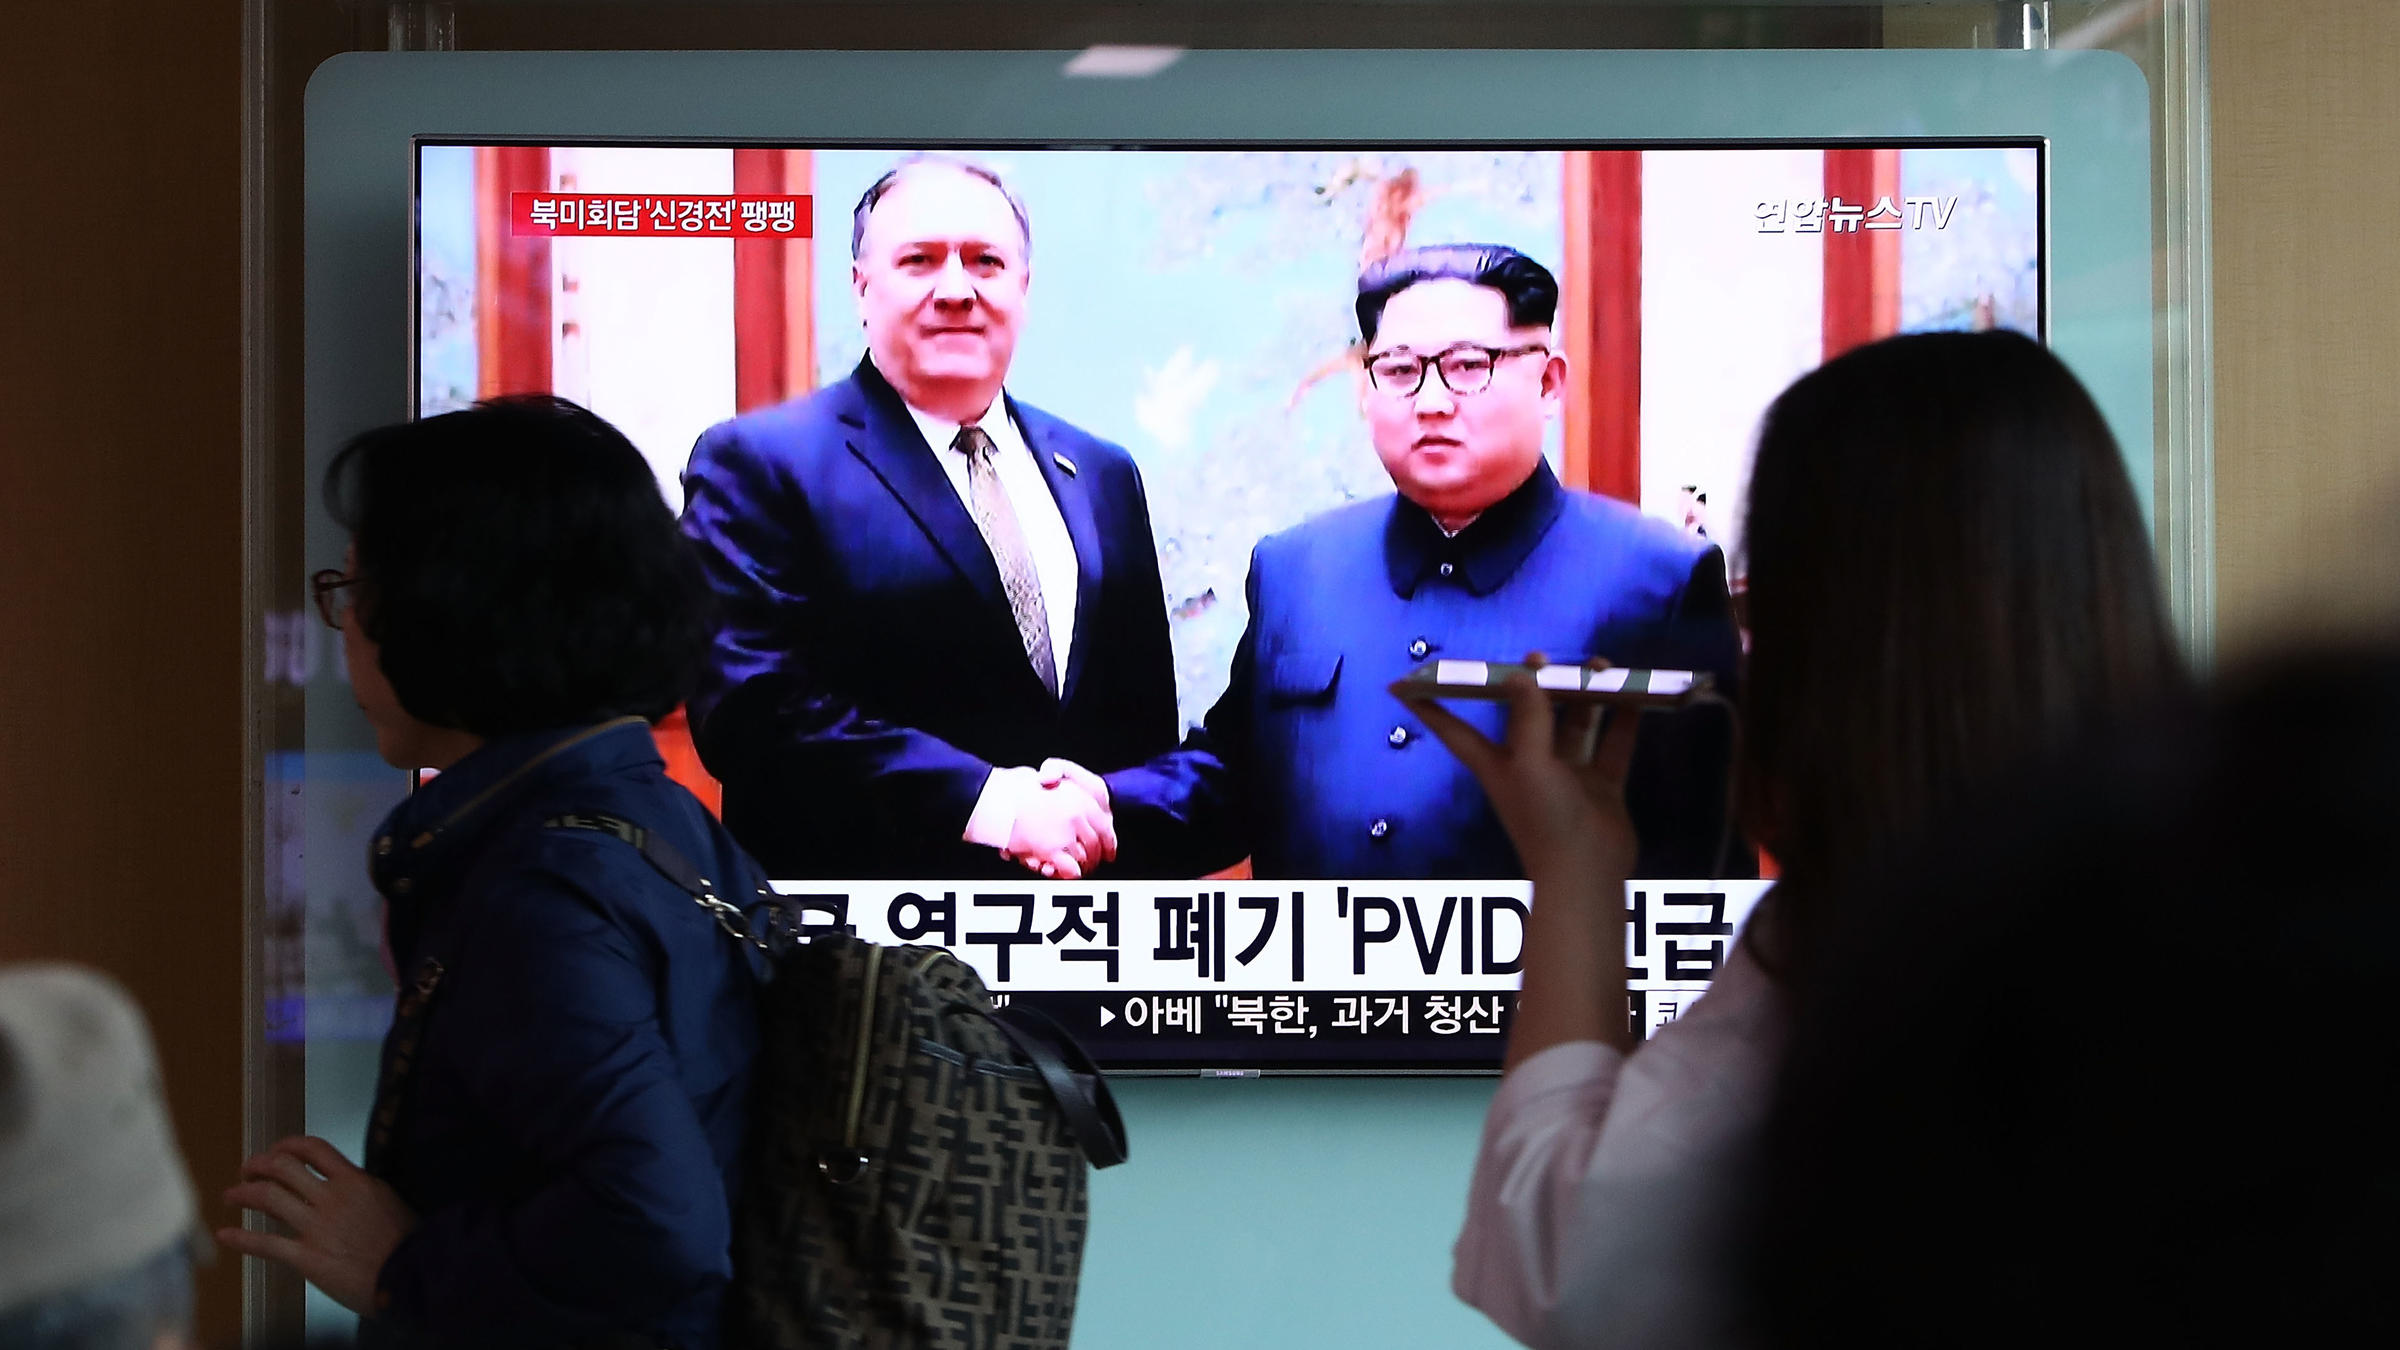 US Secretary of State Pompeo returning from N. Korea with 3 detainees